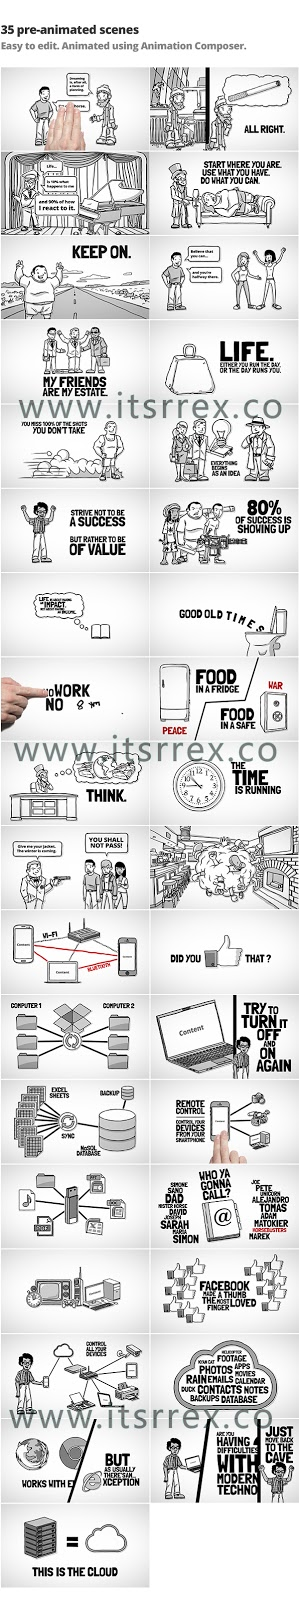 Videohive Whiteboard Kit – Make Your Own Story After Effect Free Download